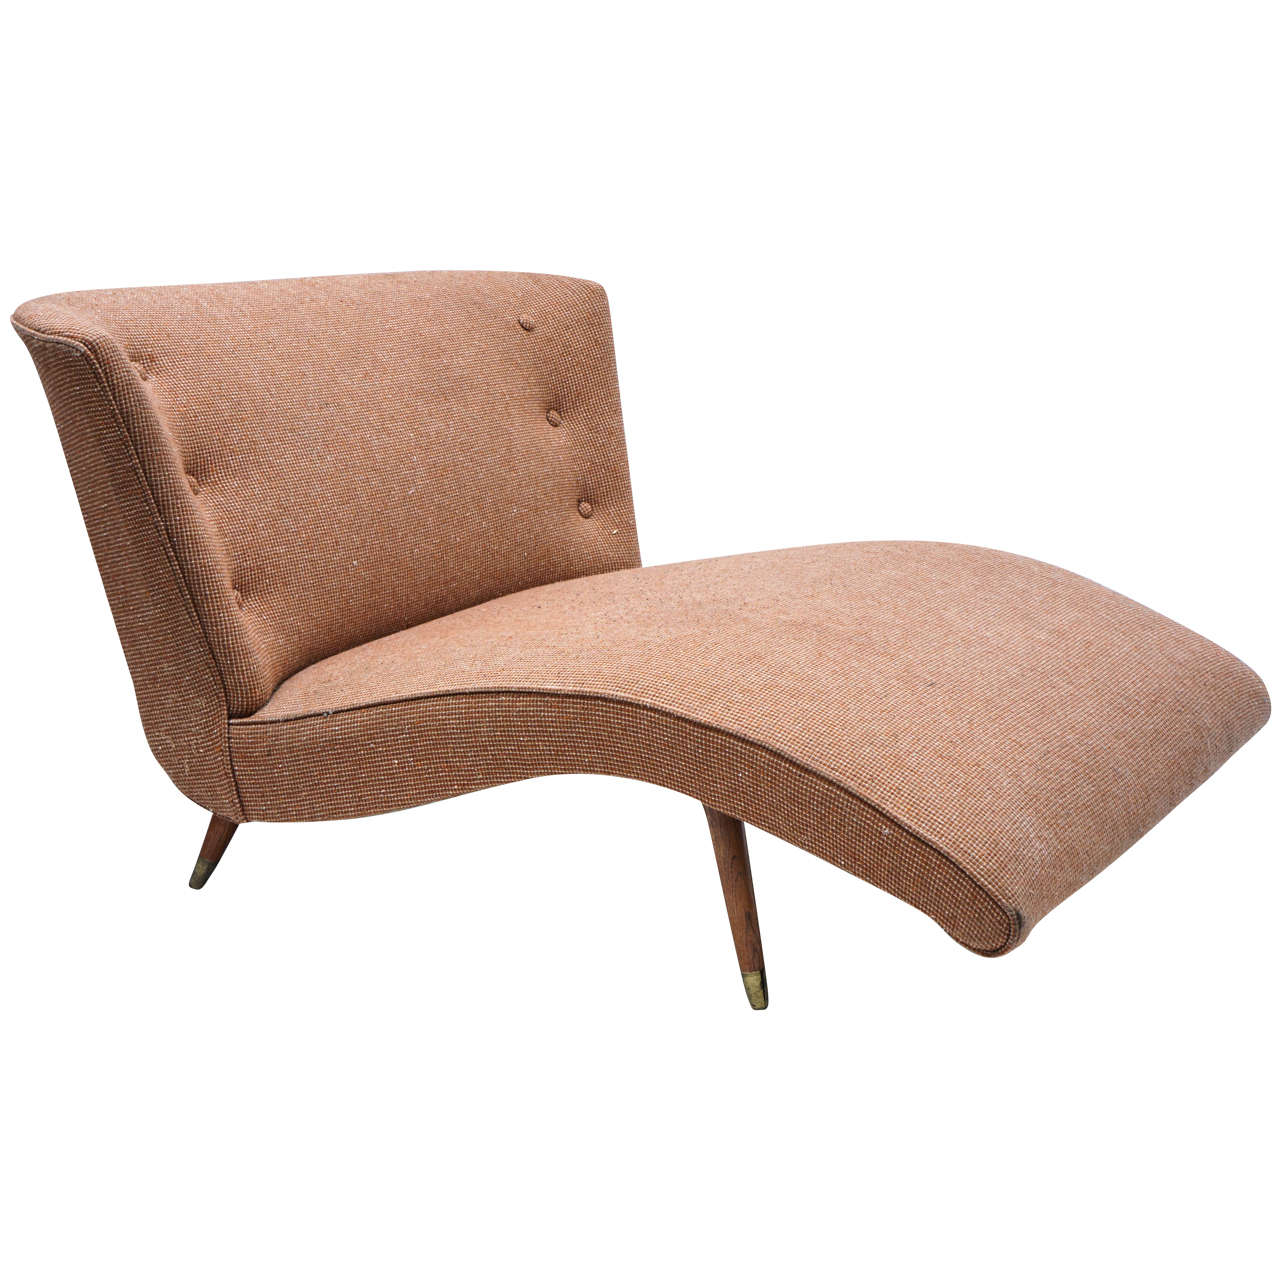 1950s curvy chaise lounge after mccobb or probber at 1stdibs for 1950s chaise lounge